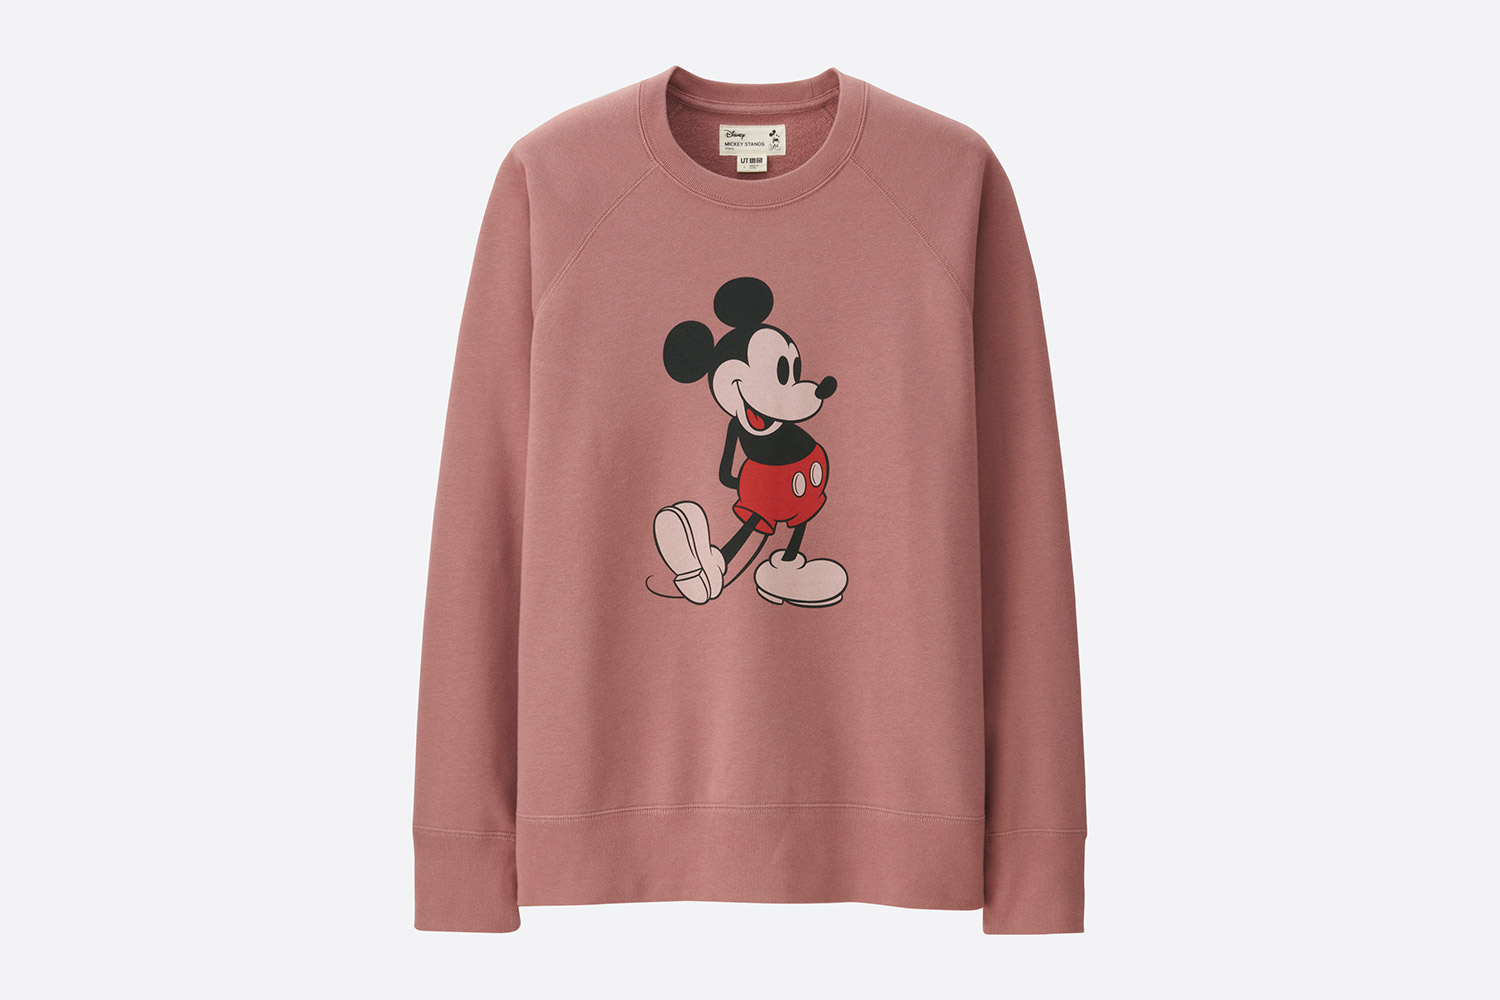 Mickey Mouse protagoniza la collab de Uniqlo & Disney